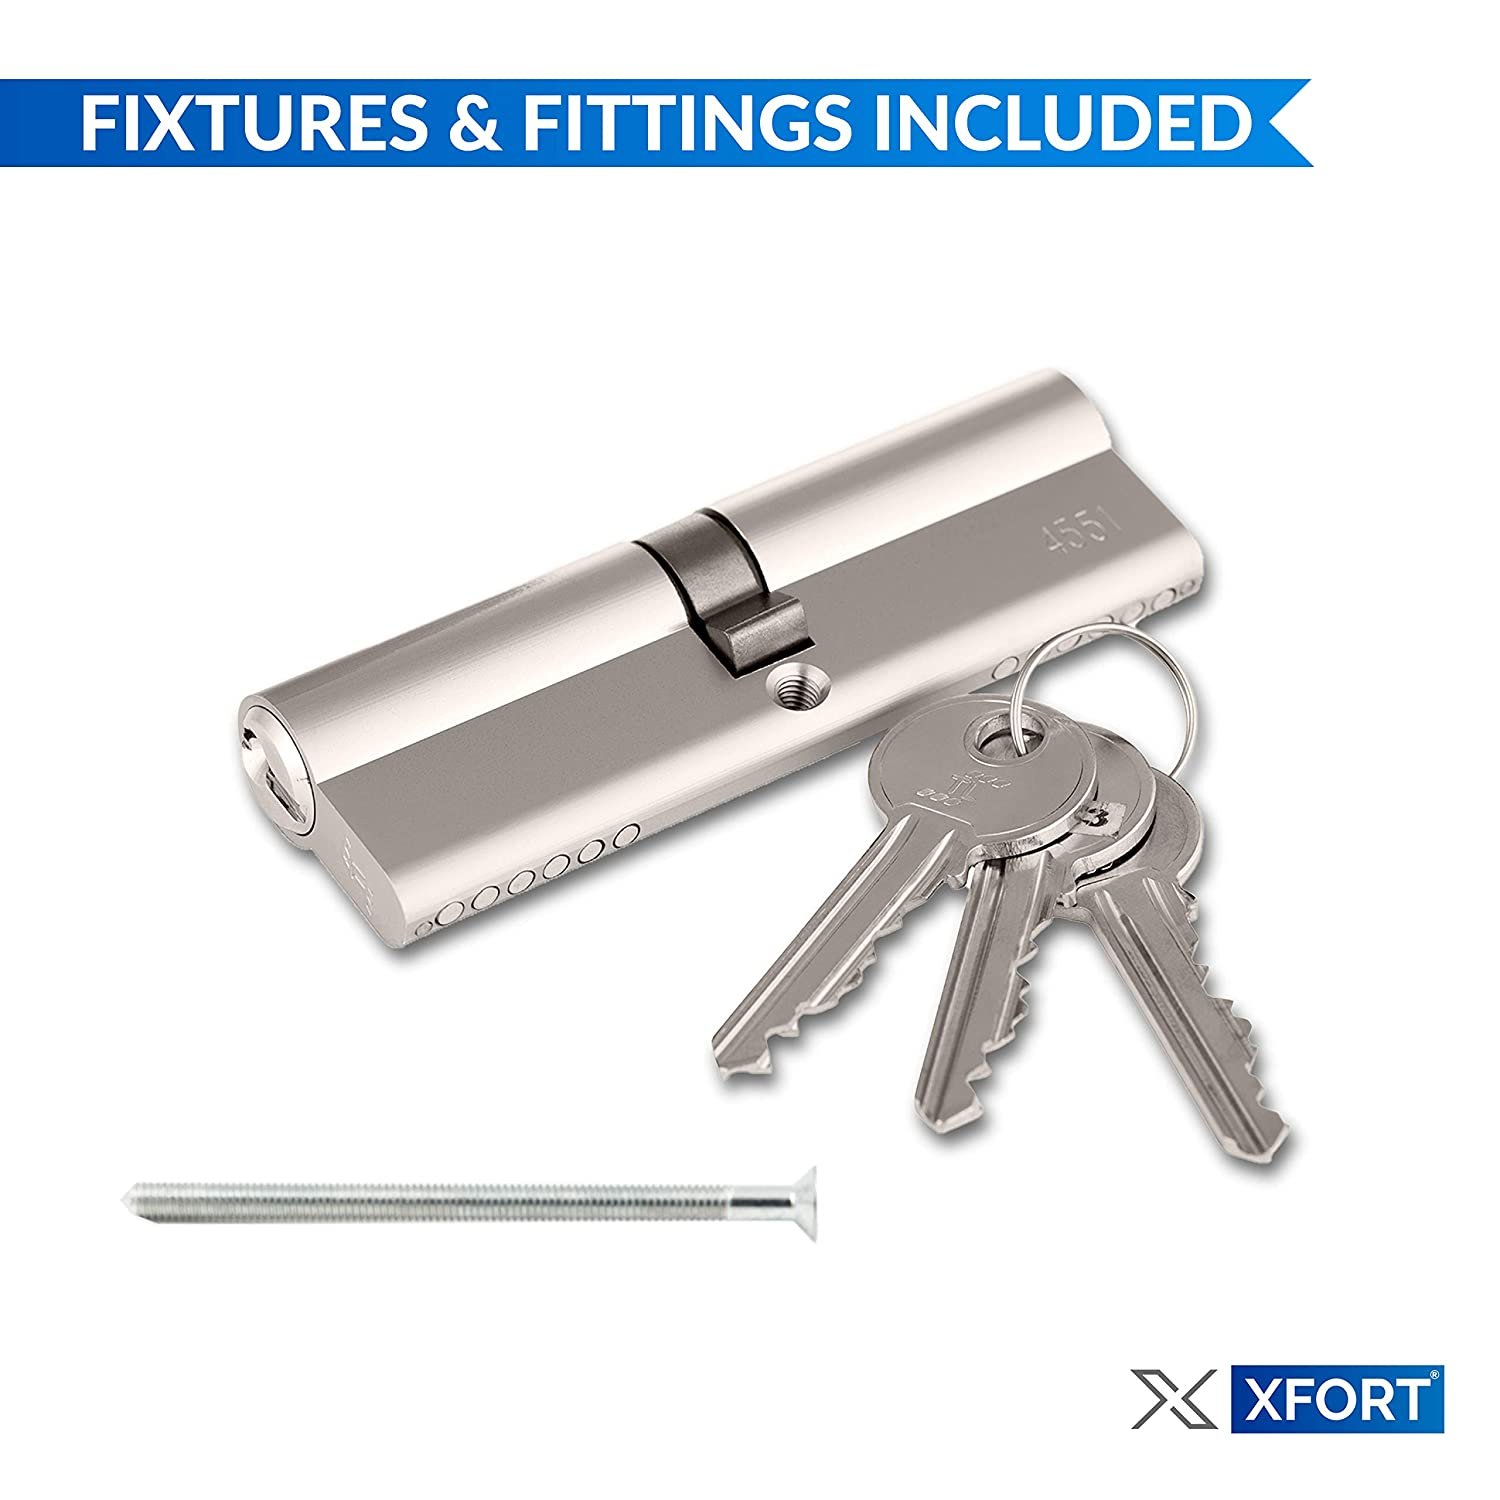 Euro Door Barrel Lock with 3 Keys UPVC and Composite Doors. 95mm XFORT/® Euro Cylinder Lock 45//50 Anti-Drill and Anti-Pick Door Lock with Key to Ensure High Security for Wooden Anti-Bump Metal